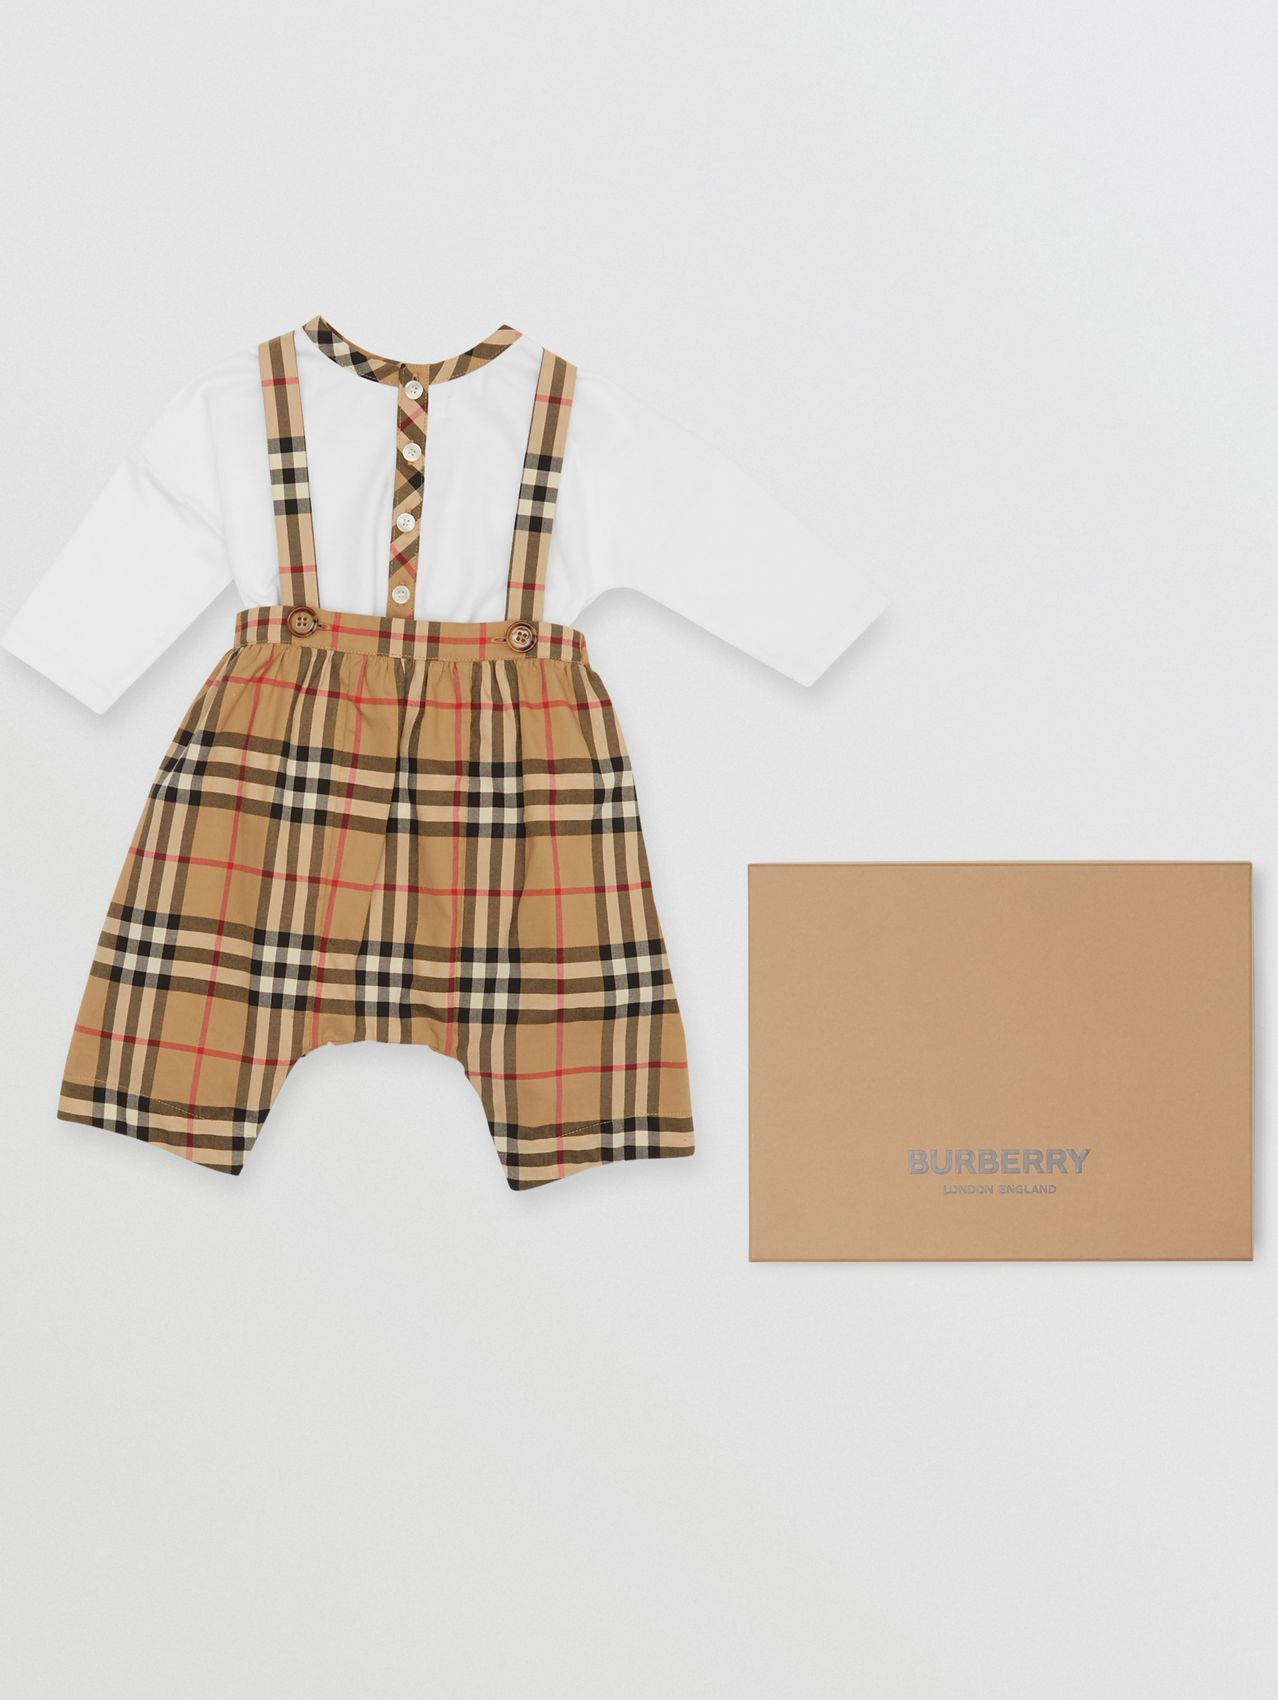 Vintage Check Organic Cotton Two-piece Baby Gift Set in White